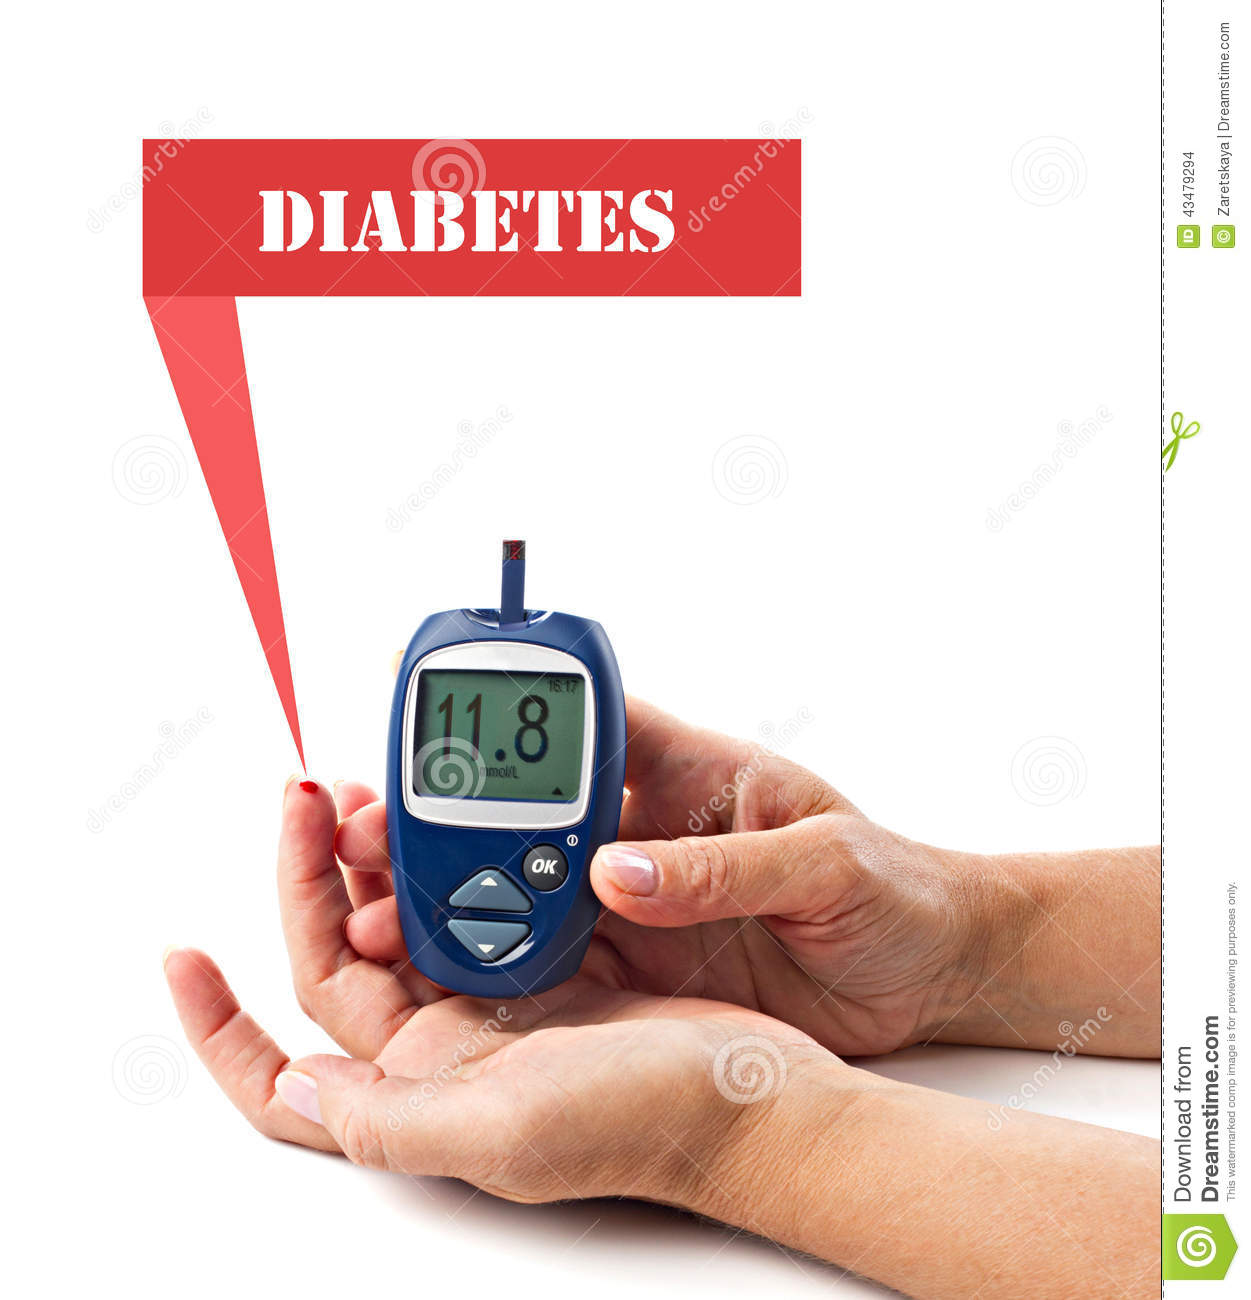 Blood sugar of 33, high blood sugar levels in elderly, no carb alcohol list, low fat low carb foods